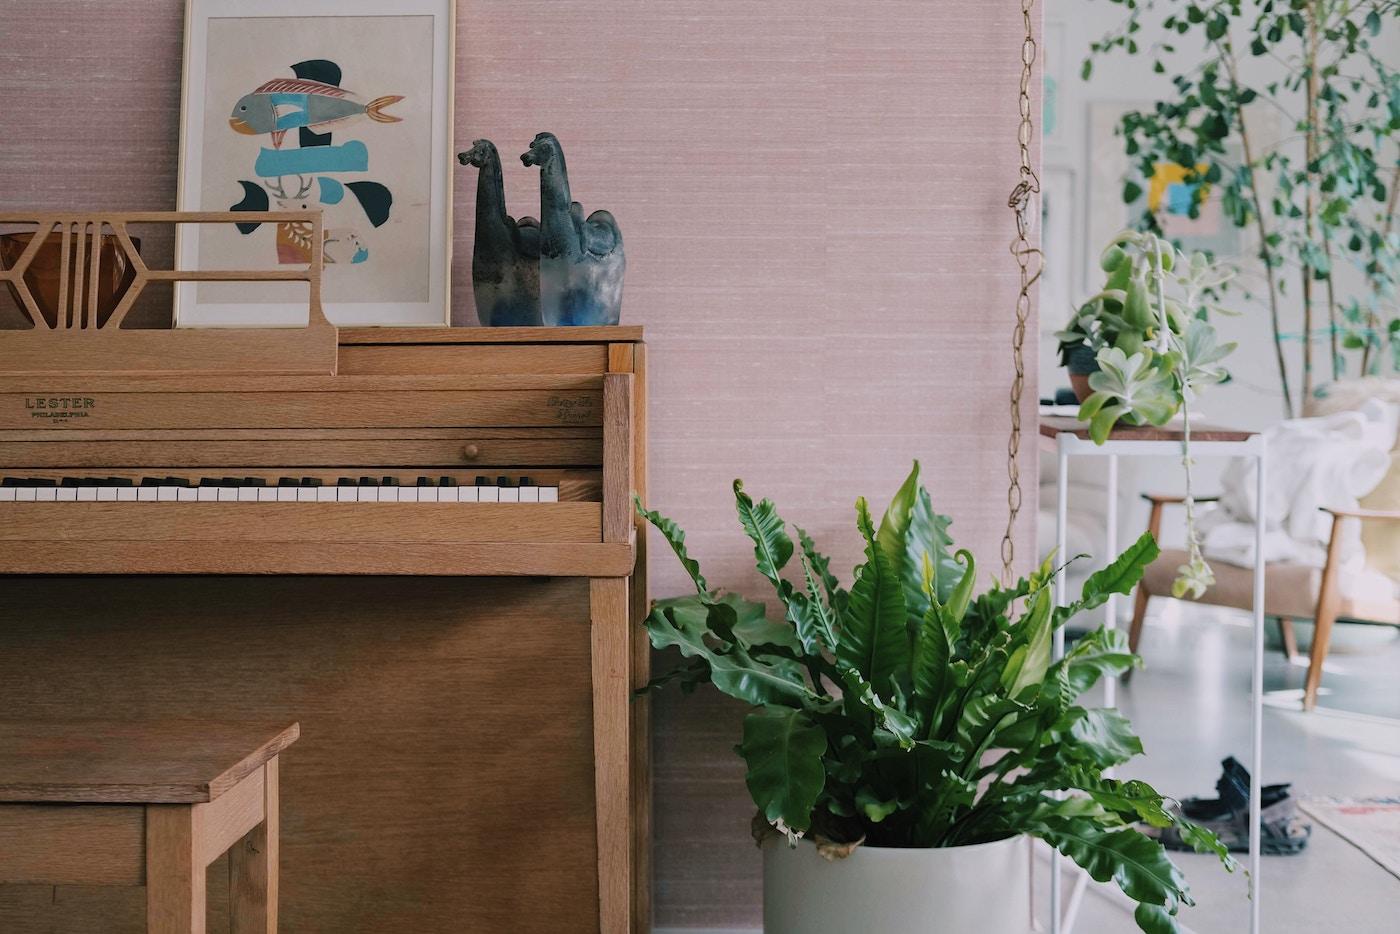 Music teaching room with piano